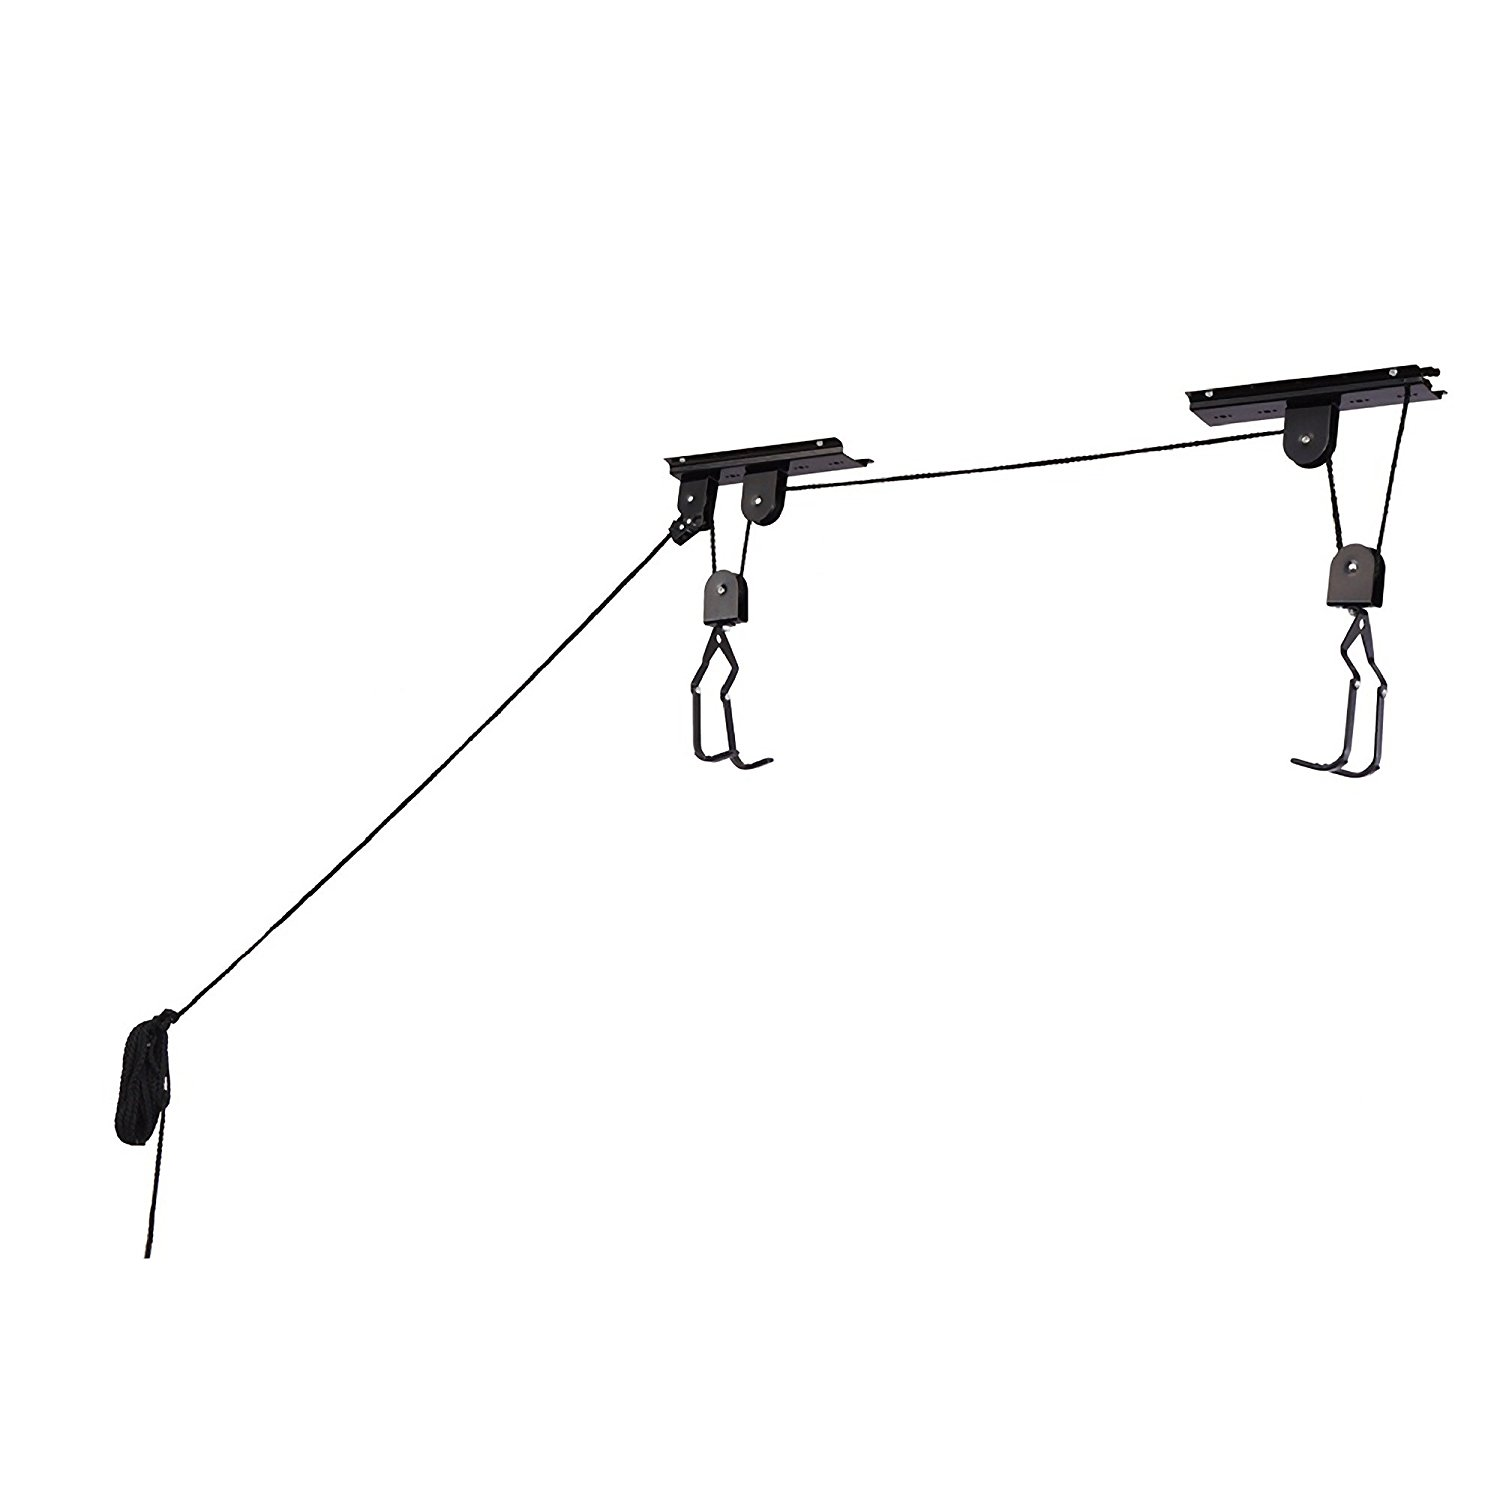 RAD Cycle Products Bike Lift Hoist